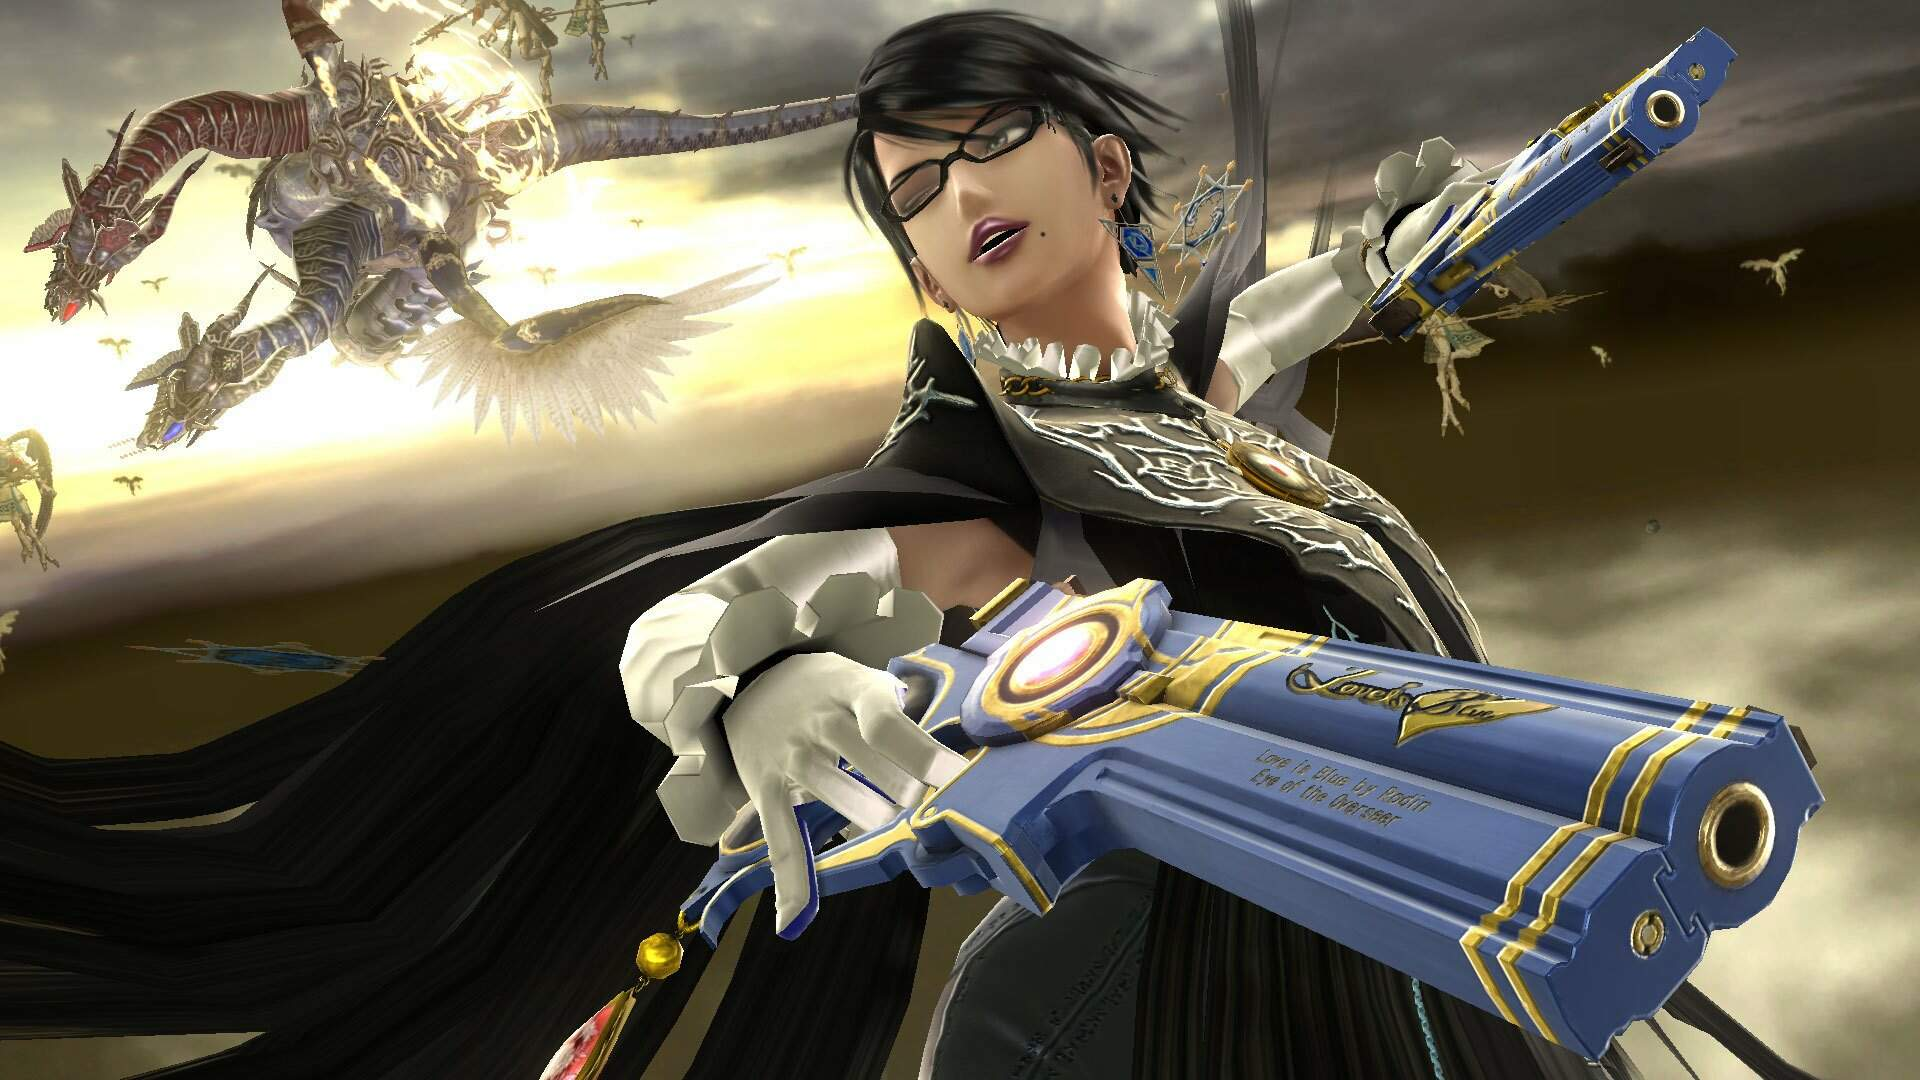 With a Nintendo Direct Possibly Around the Corner, It's Time We Heard More About Bayonetta 3